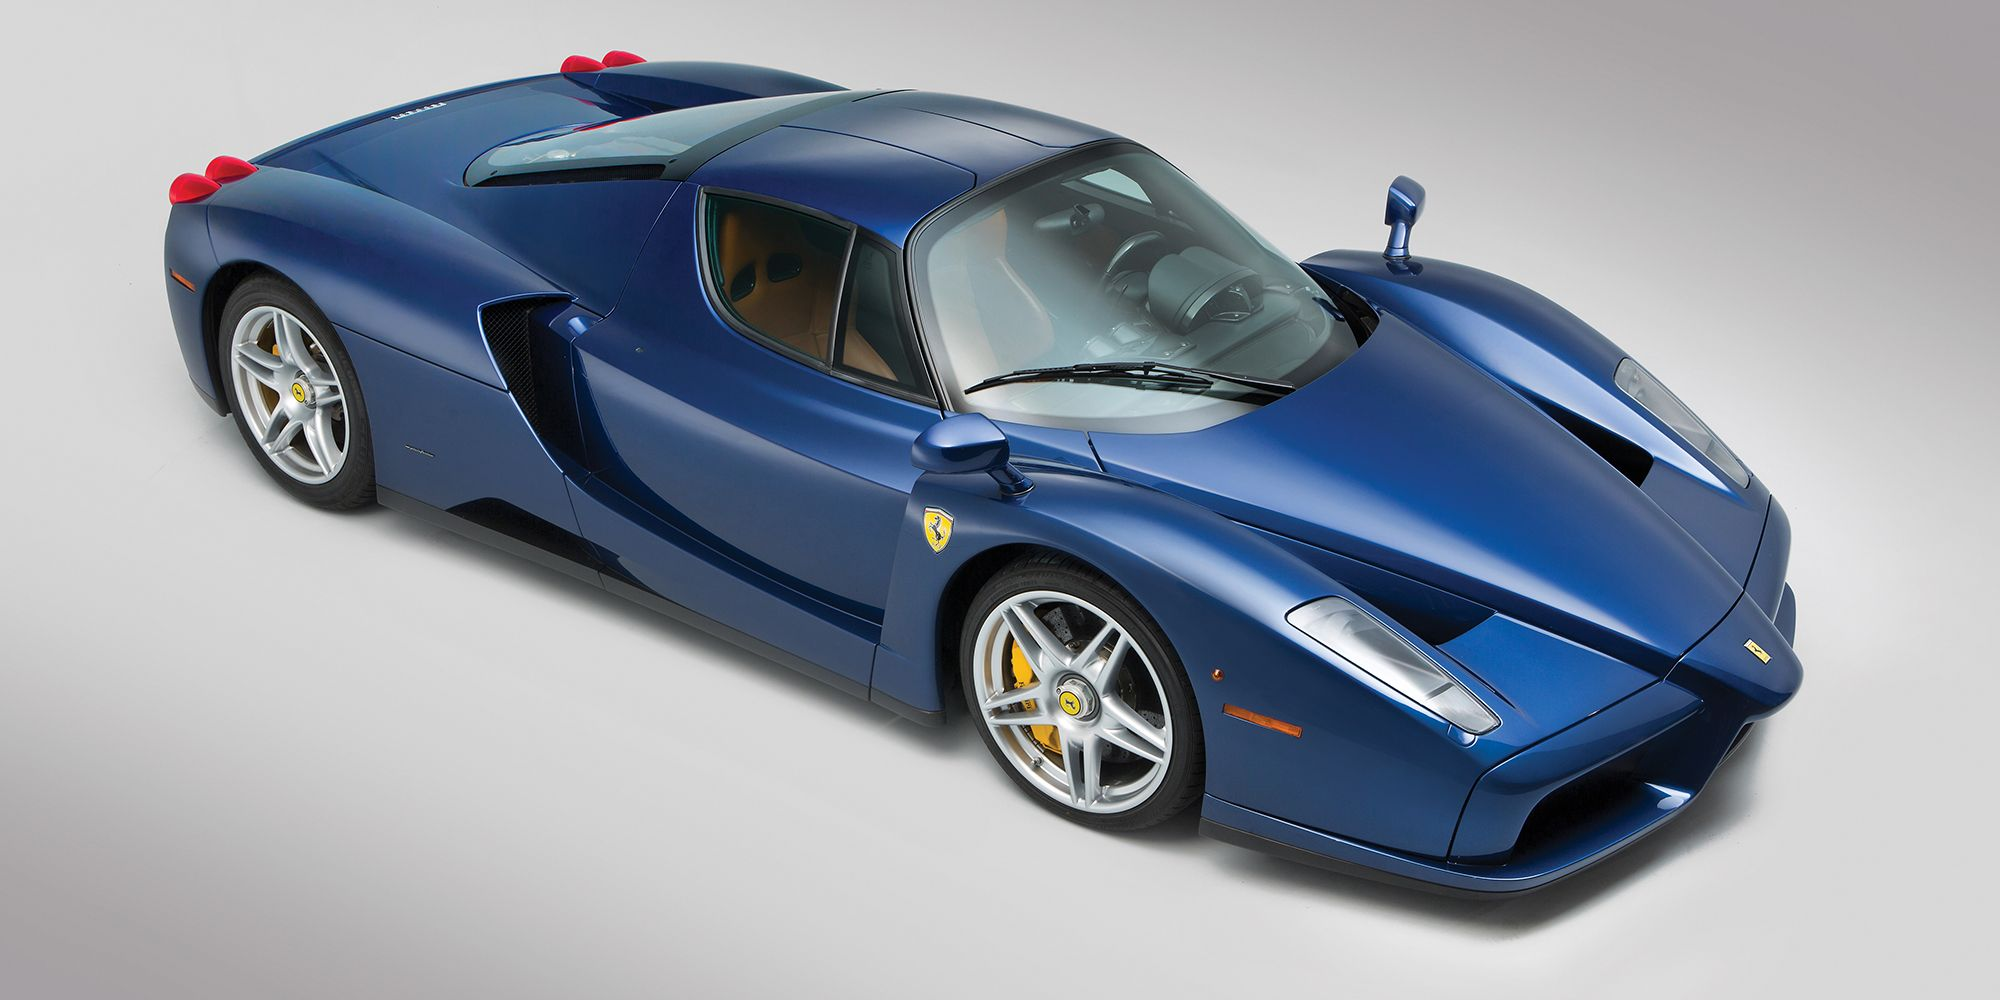 This Tour De France Blue Ferrari Enzo Is Lovely And Can Be Yours